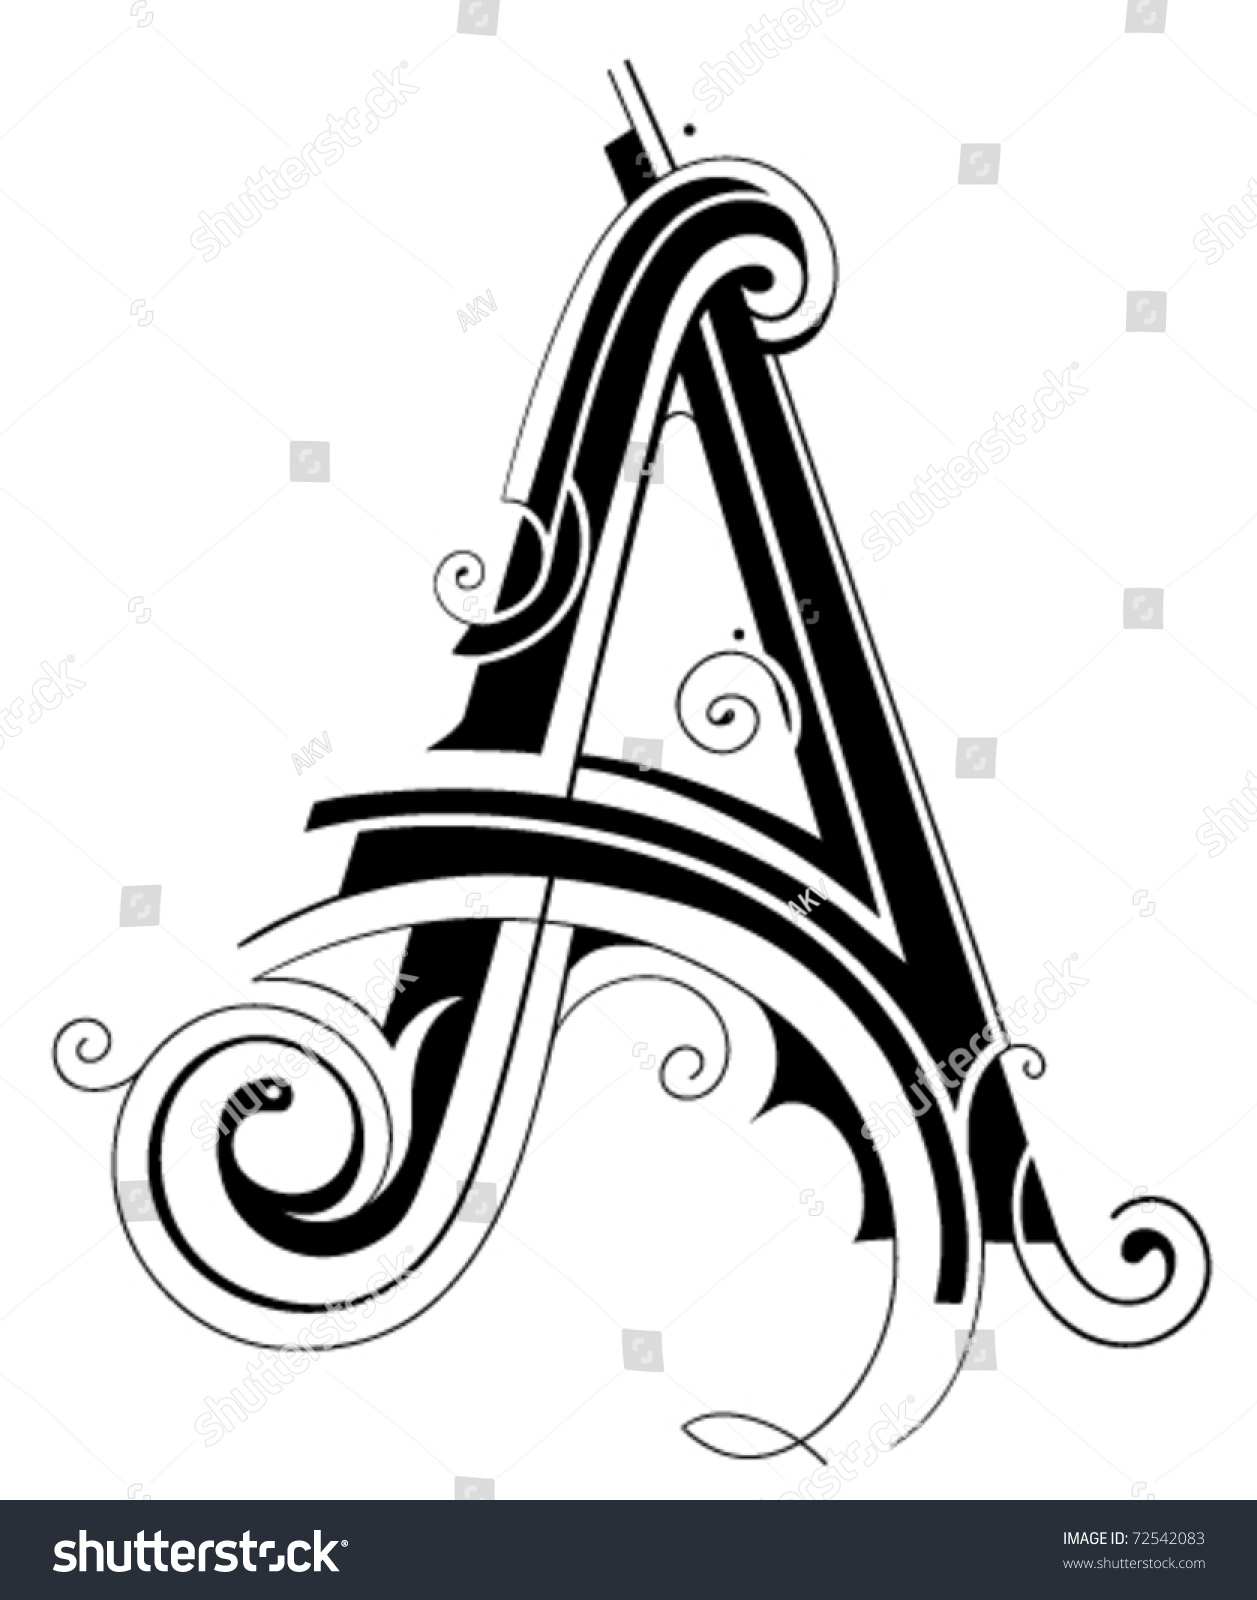 decorative letter shape